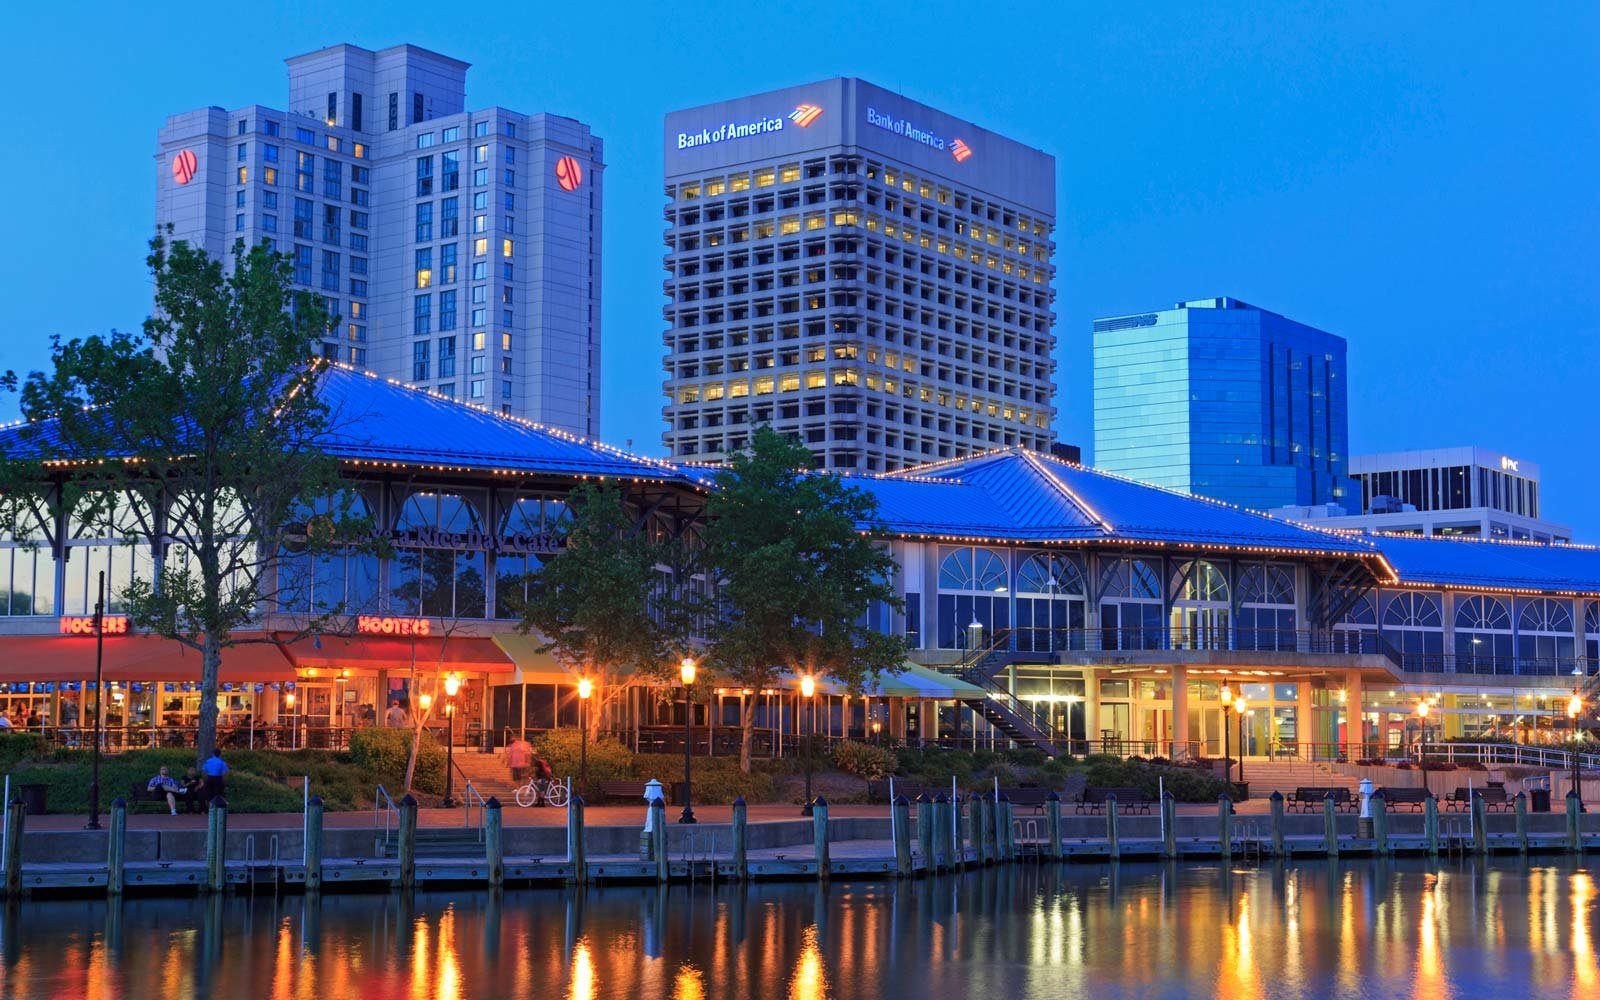 Best city in america for dating